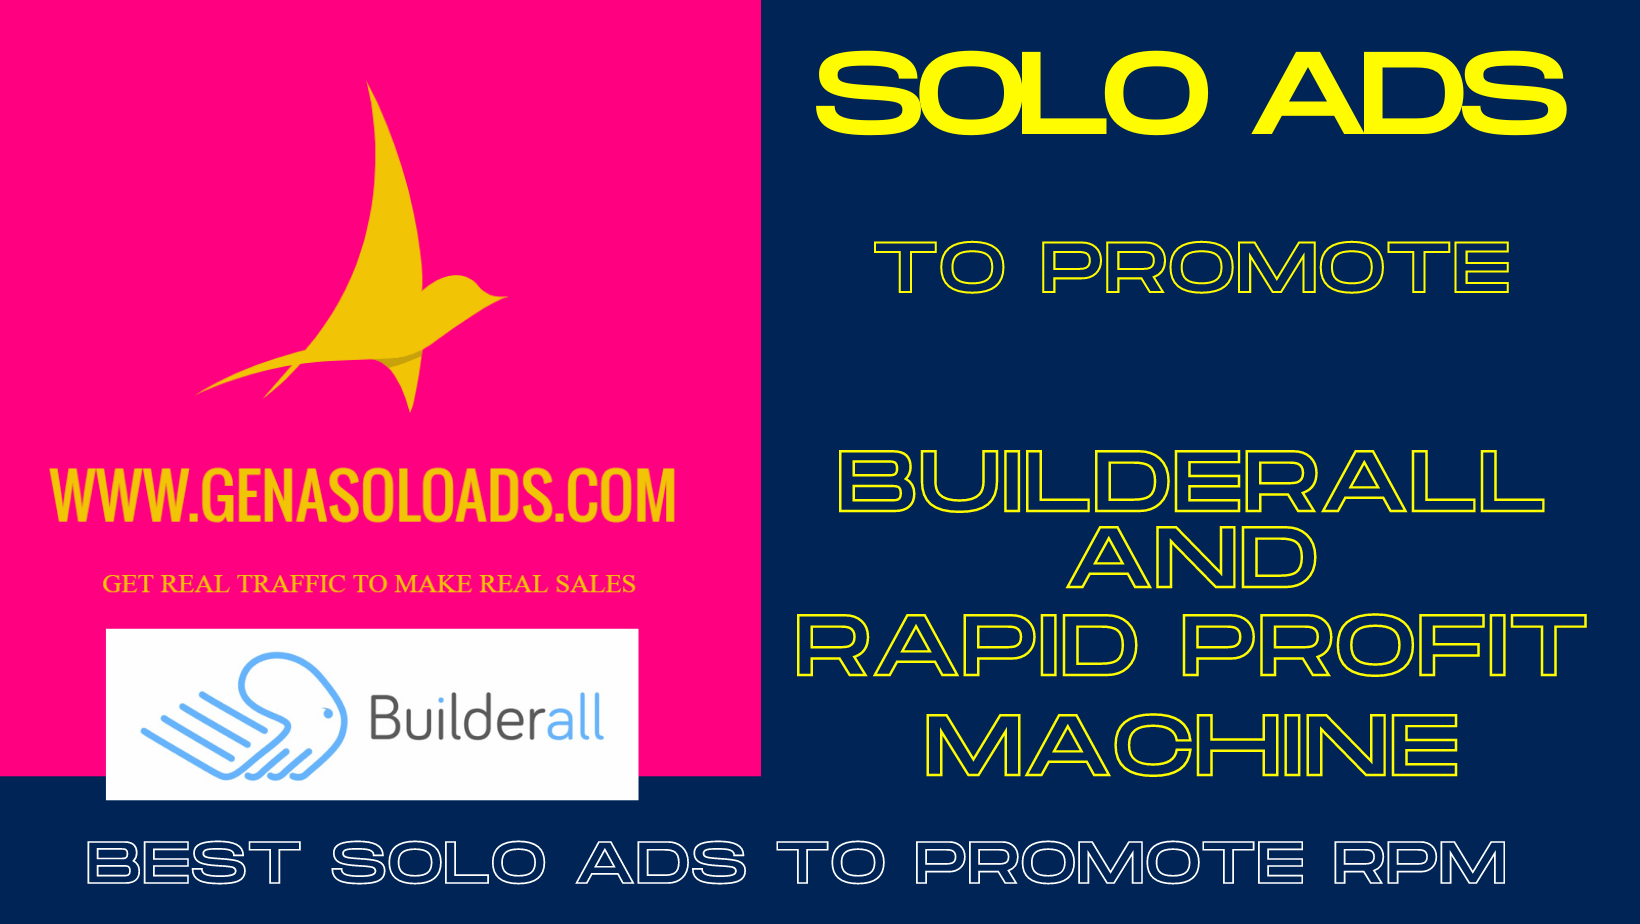 Best solo ads to promote rapid profit machine and Builderall